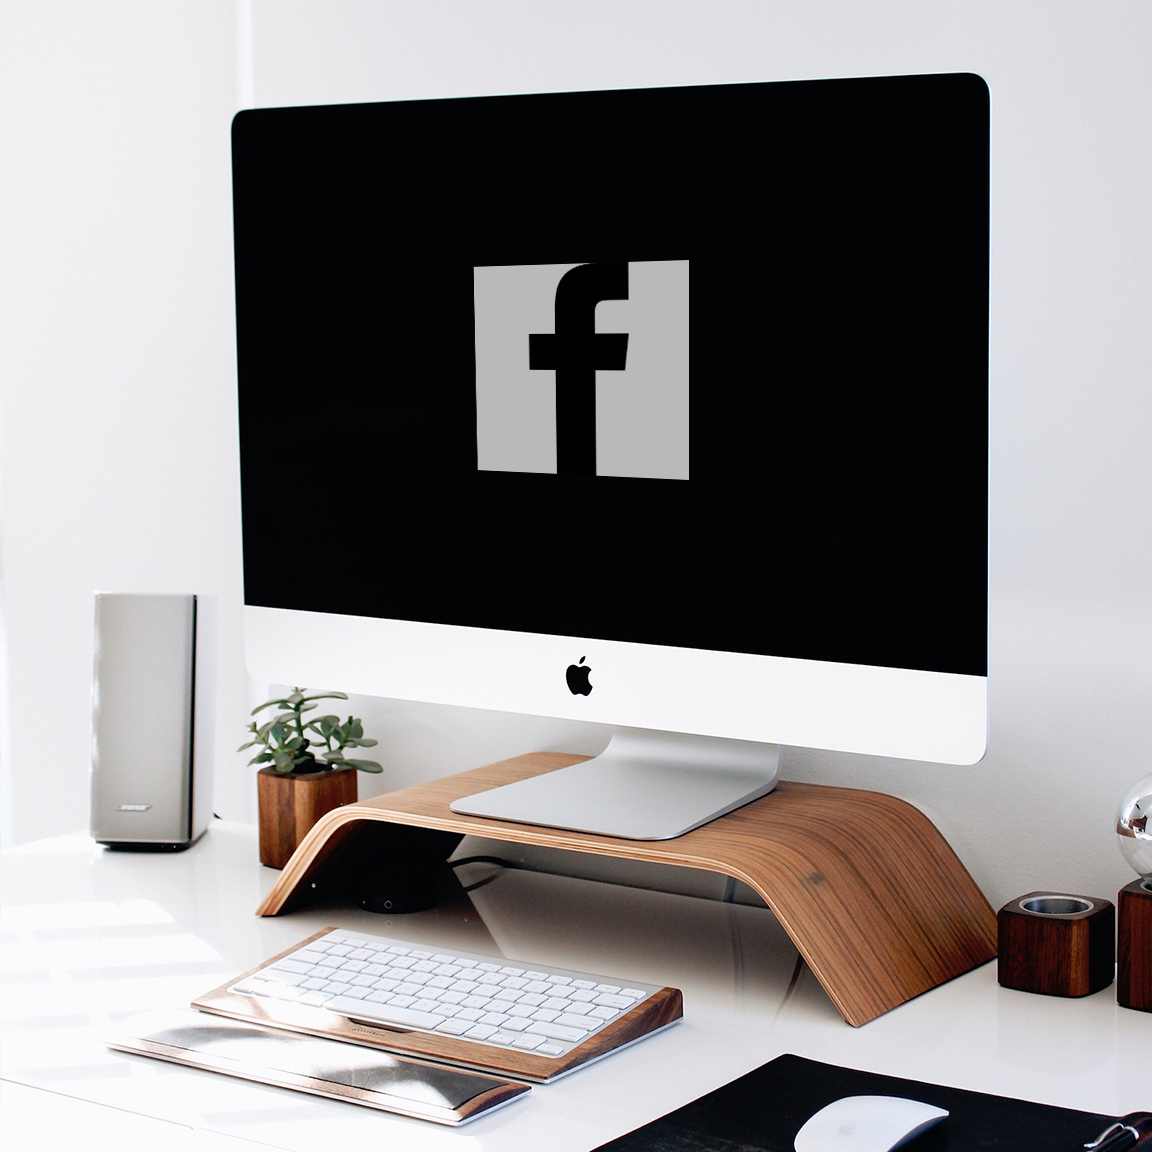 LEVERAGING FACEBOOK GROUPS FOR LEADERS - BY SHARVETTE MITCHELL